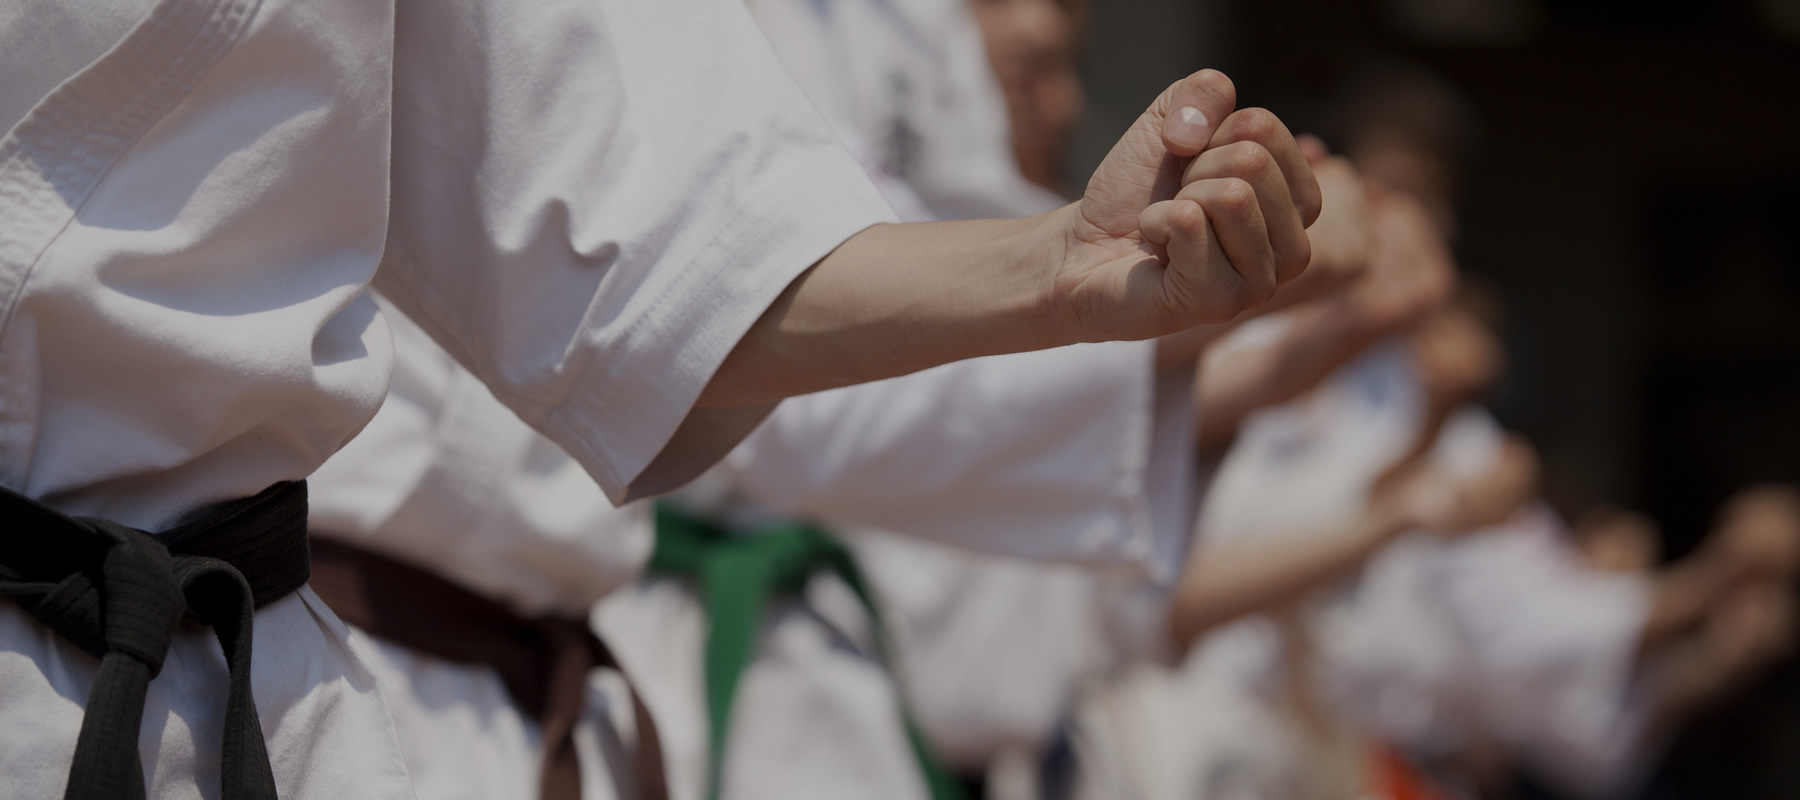 11176436-karate-Stock-Photo-karate-martial-art22